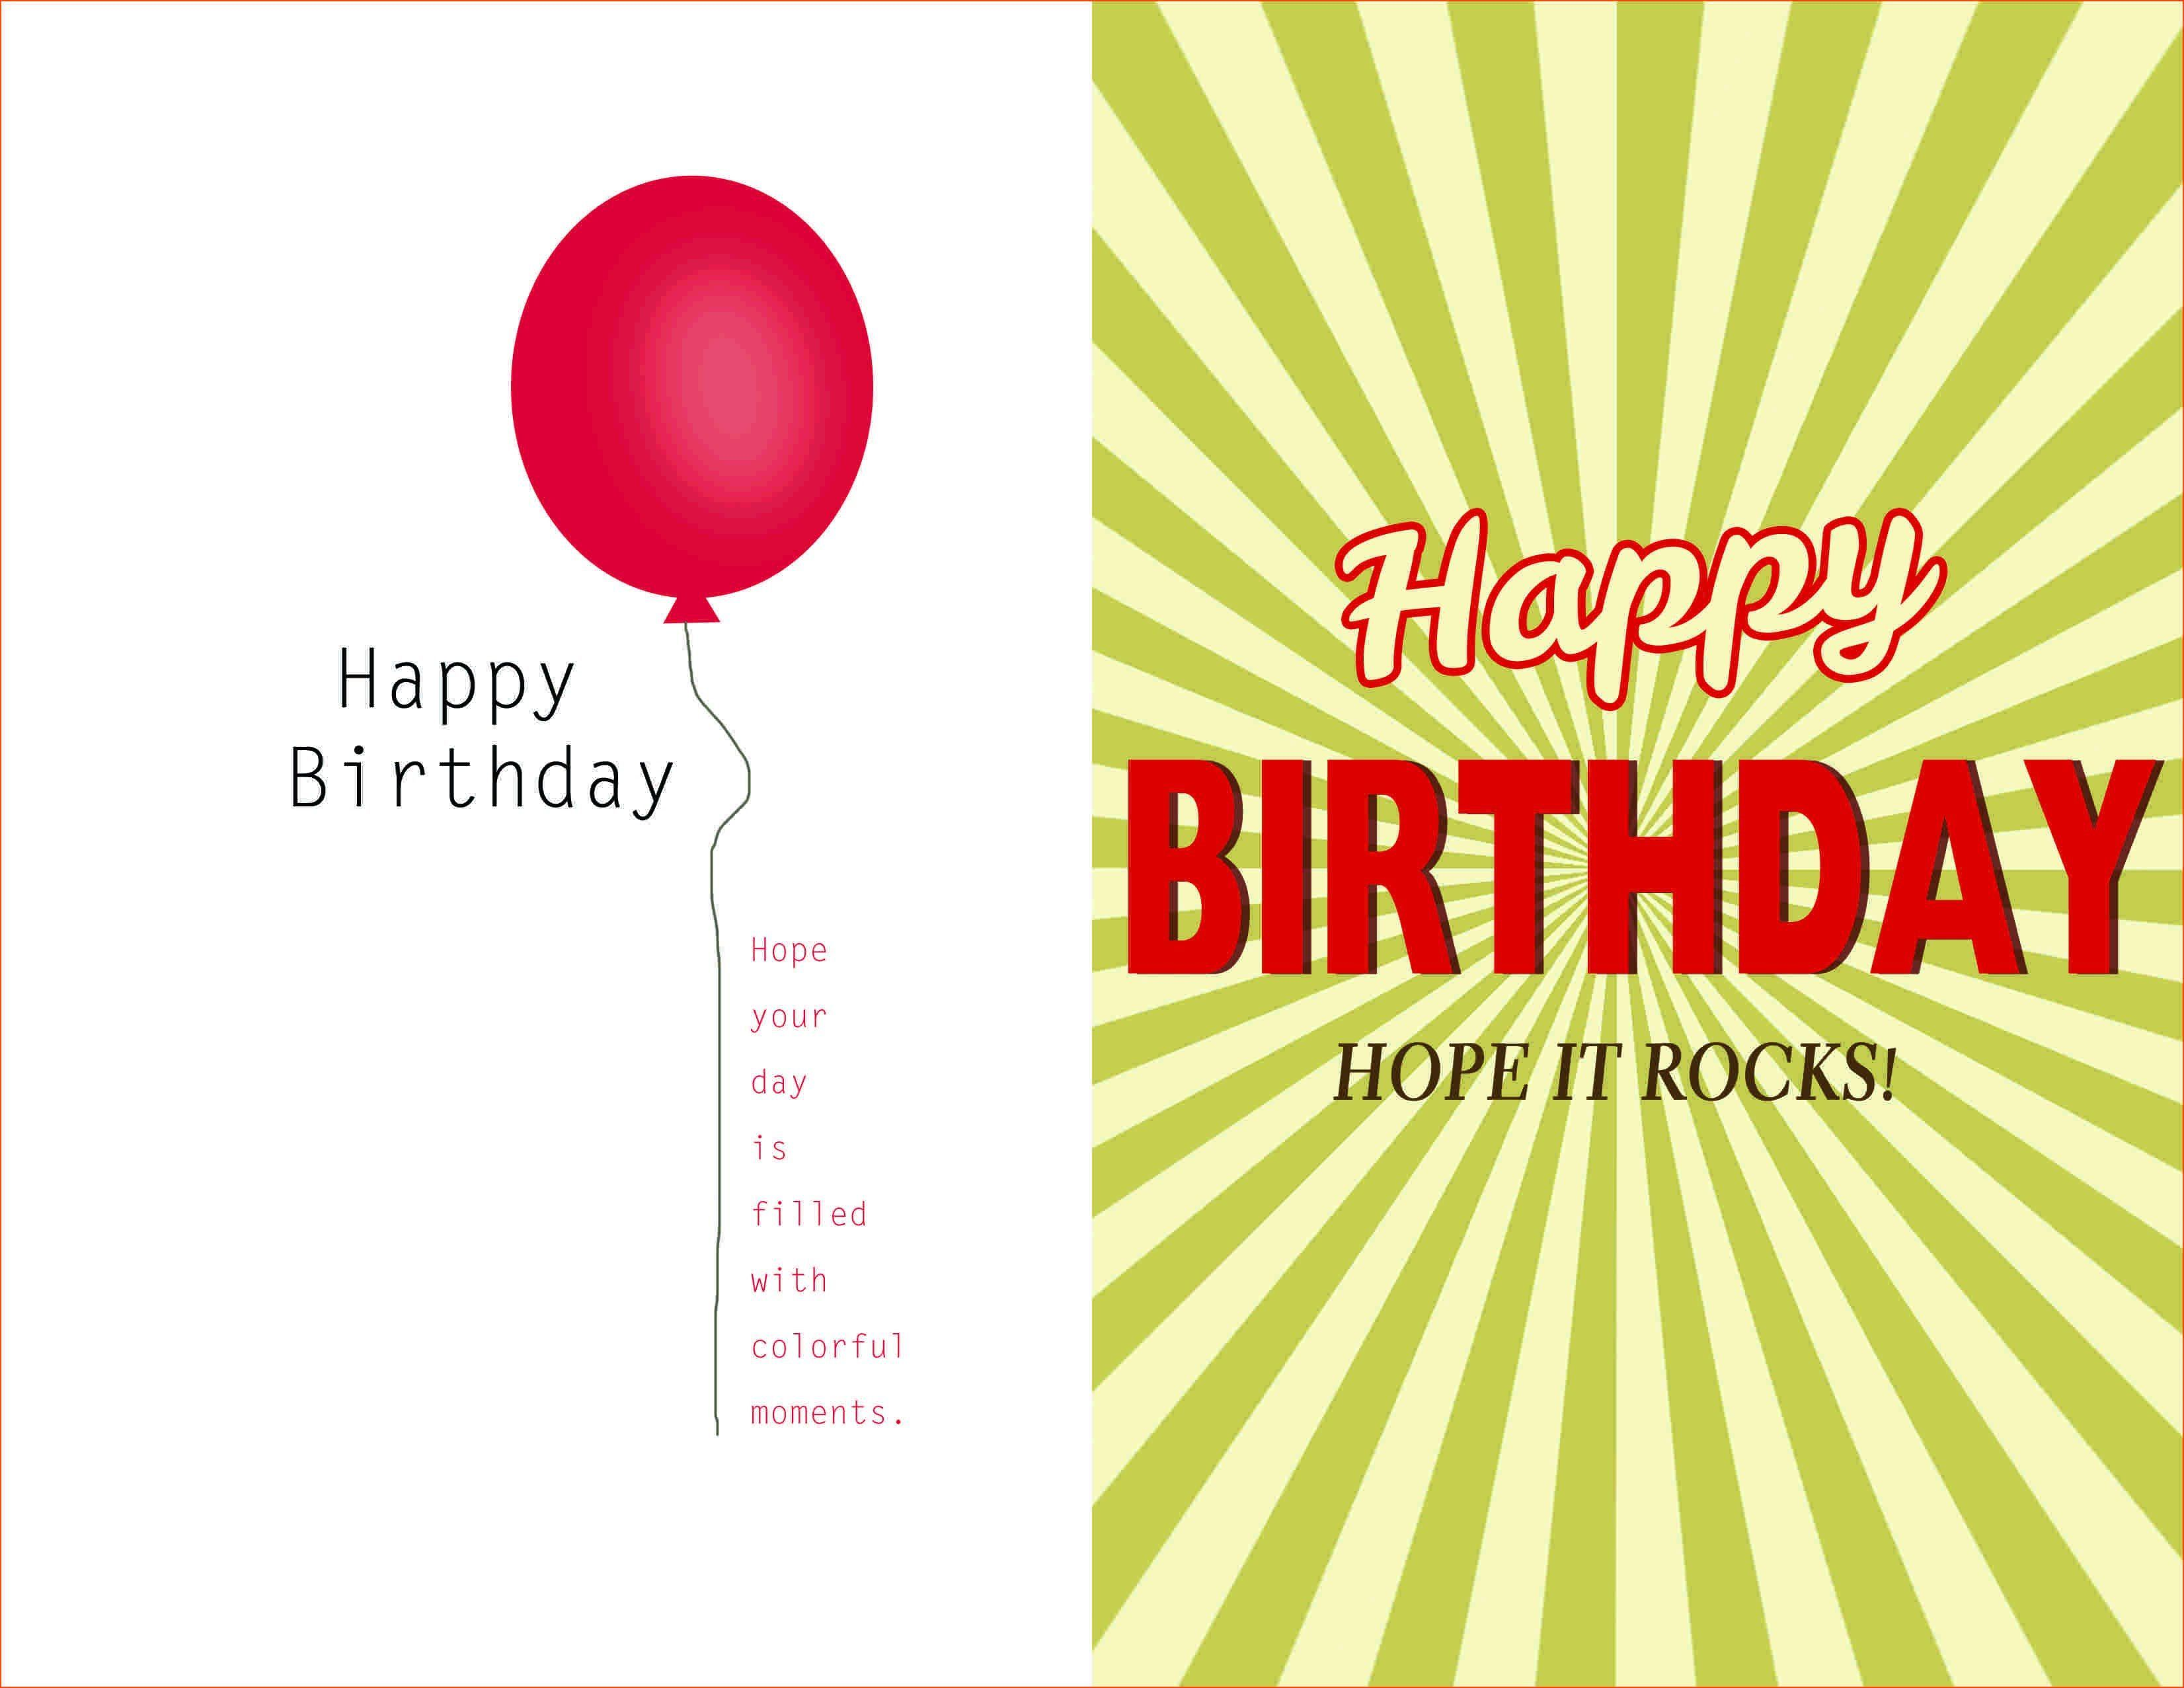 000 Simple Birthday Card Template Word Highest Clarity  Blank Greeting Microsoft 2010Full